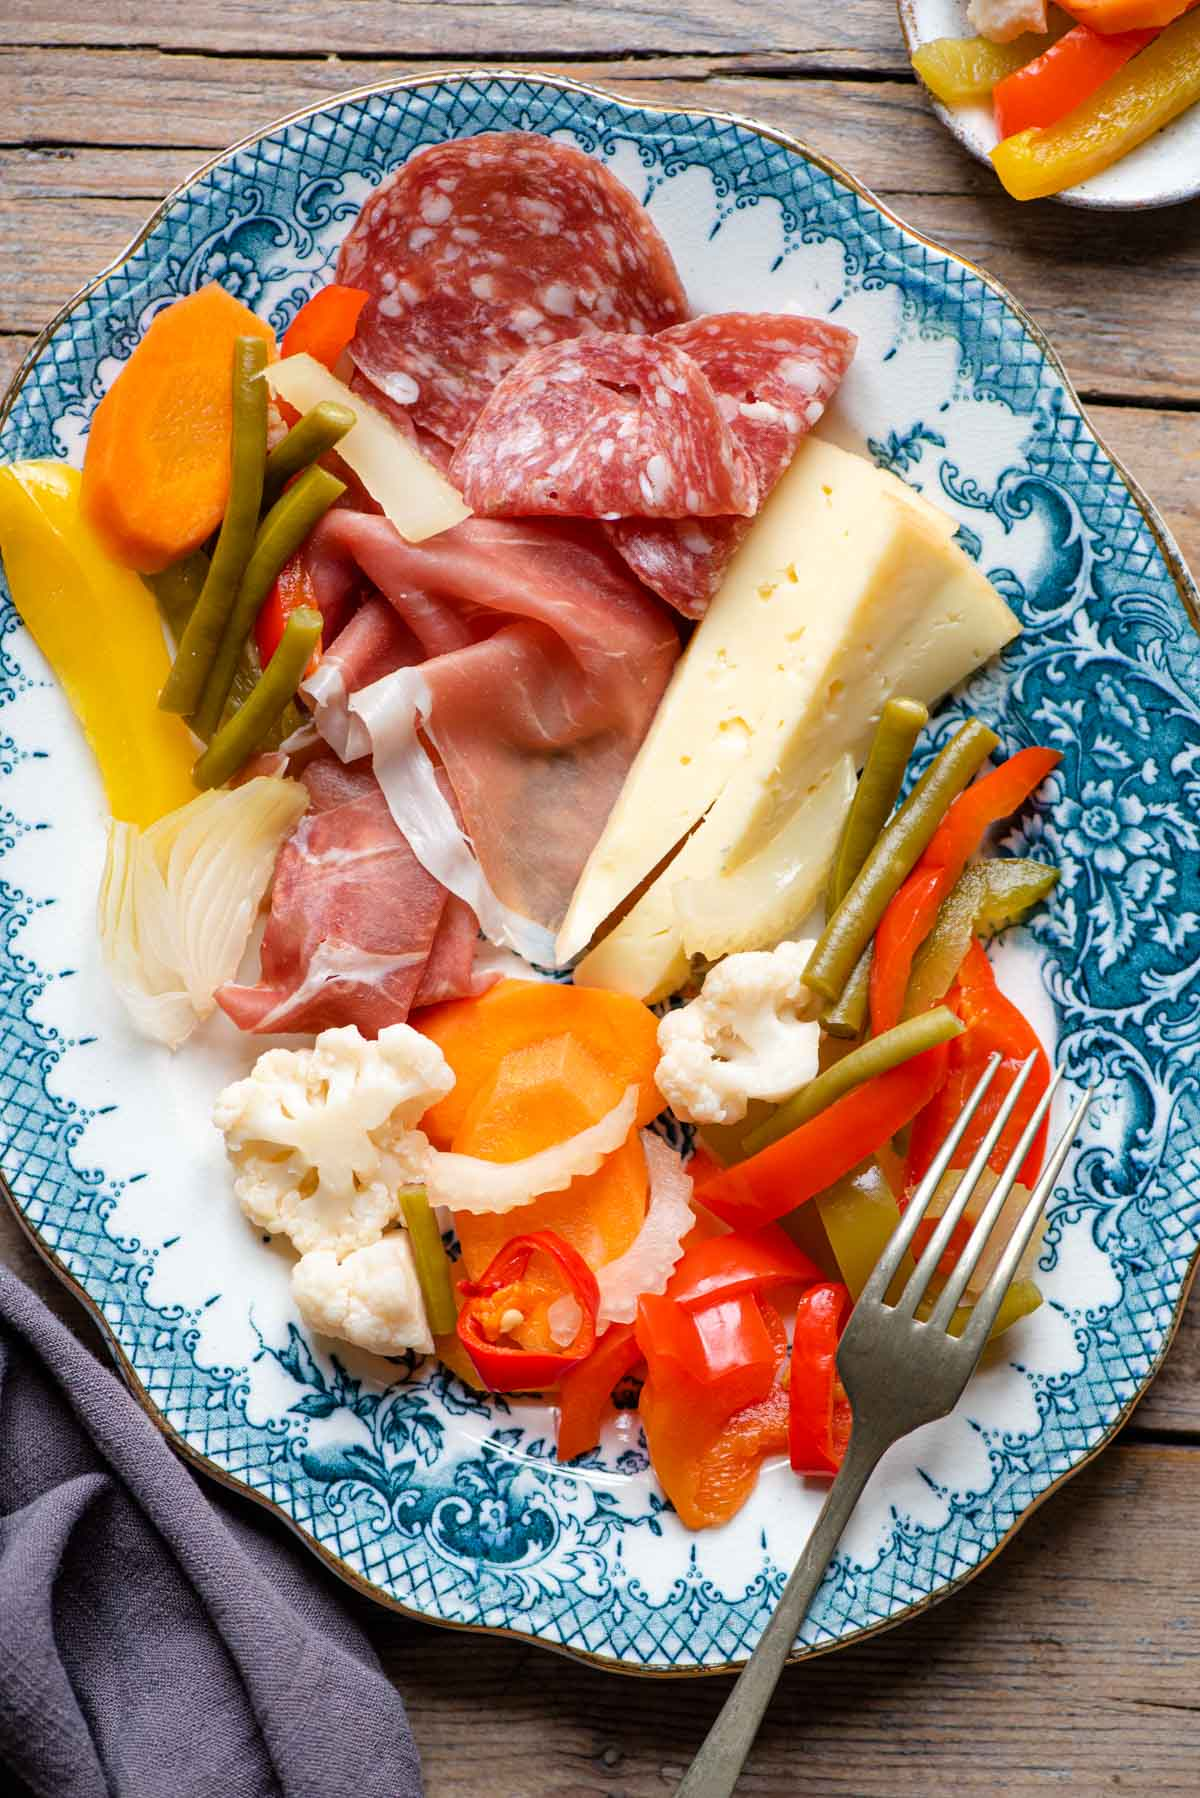 Italian pickled vegetables on a platter with cured meats and cheese